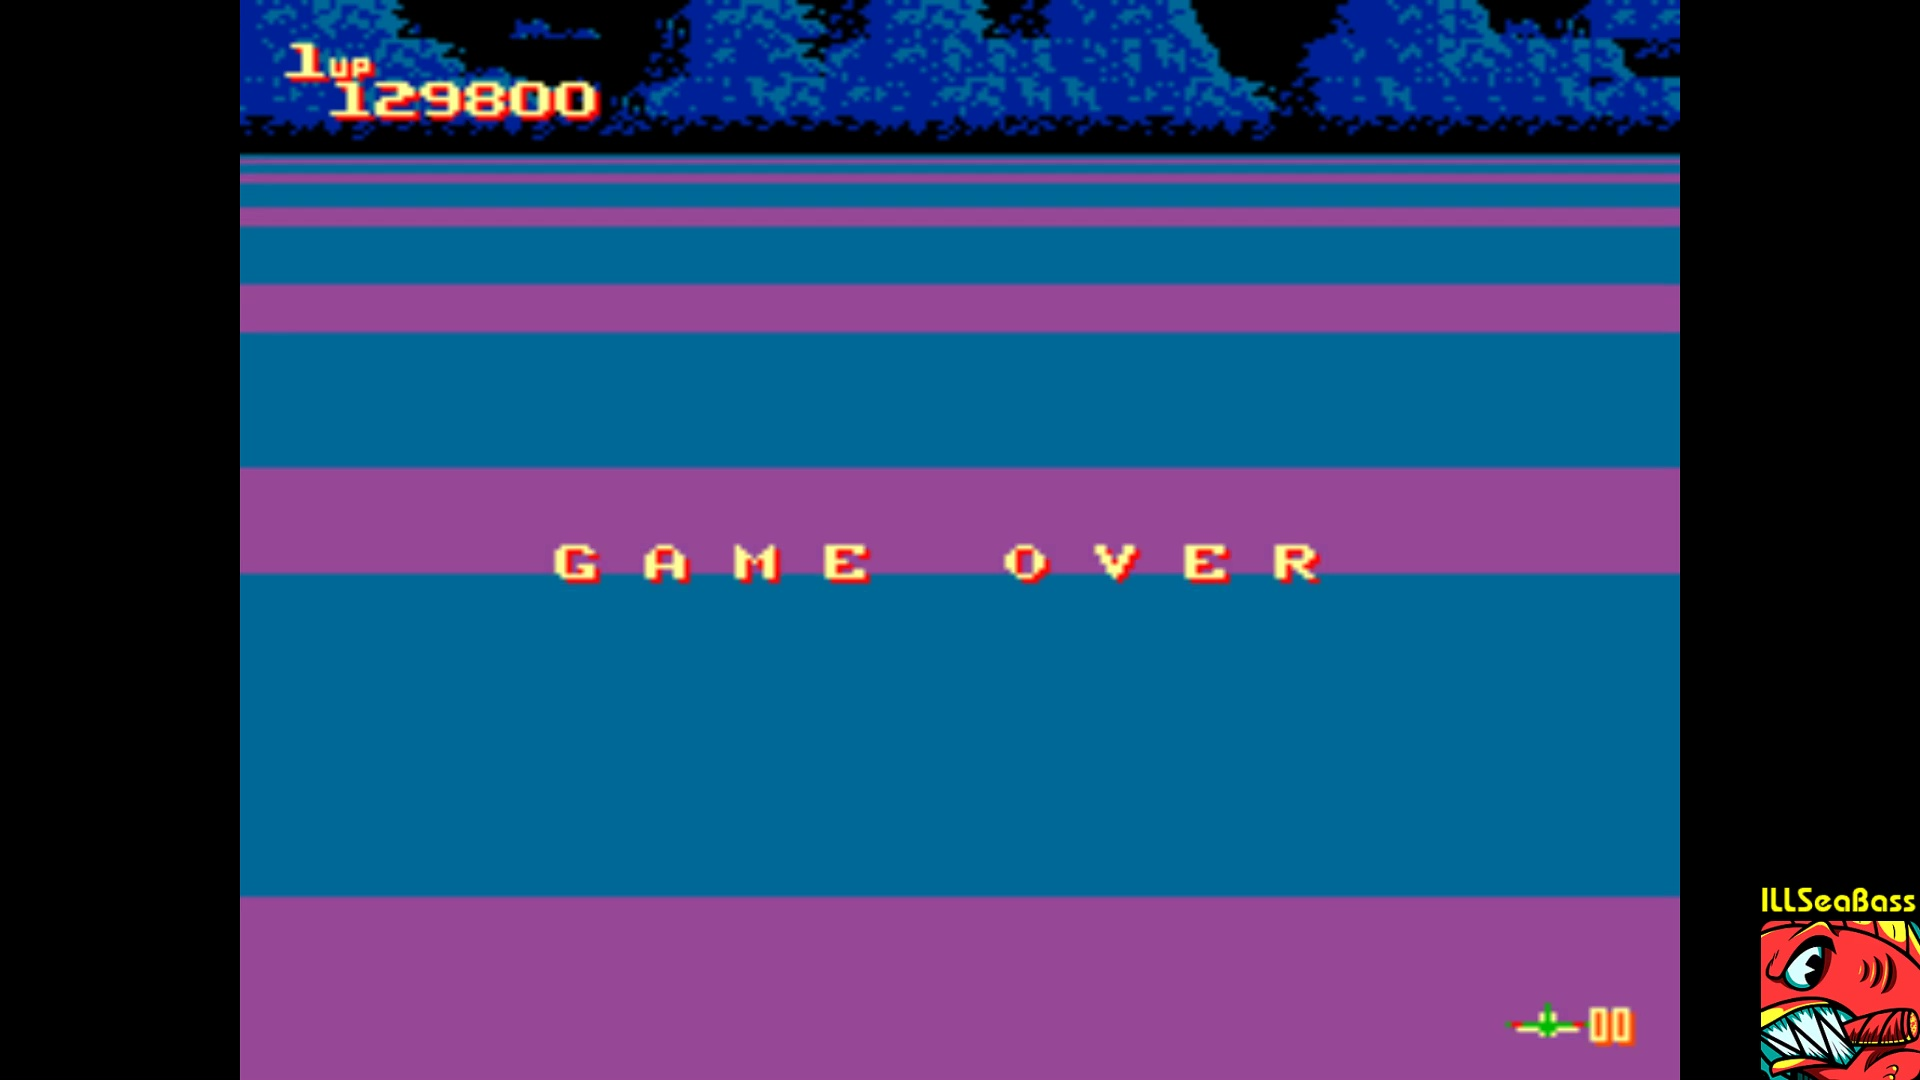 ILLSeaBass: Sky Destroyer [skydest] (Arcade Emulated / M.A.M.E.) 129,800 points on 2018-01-30 09:26:21